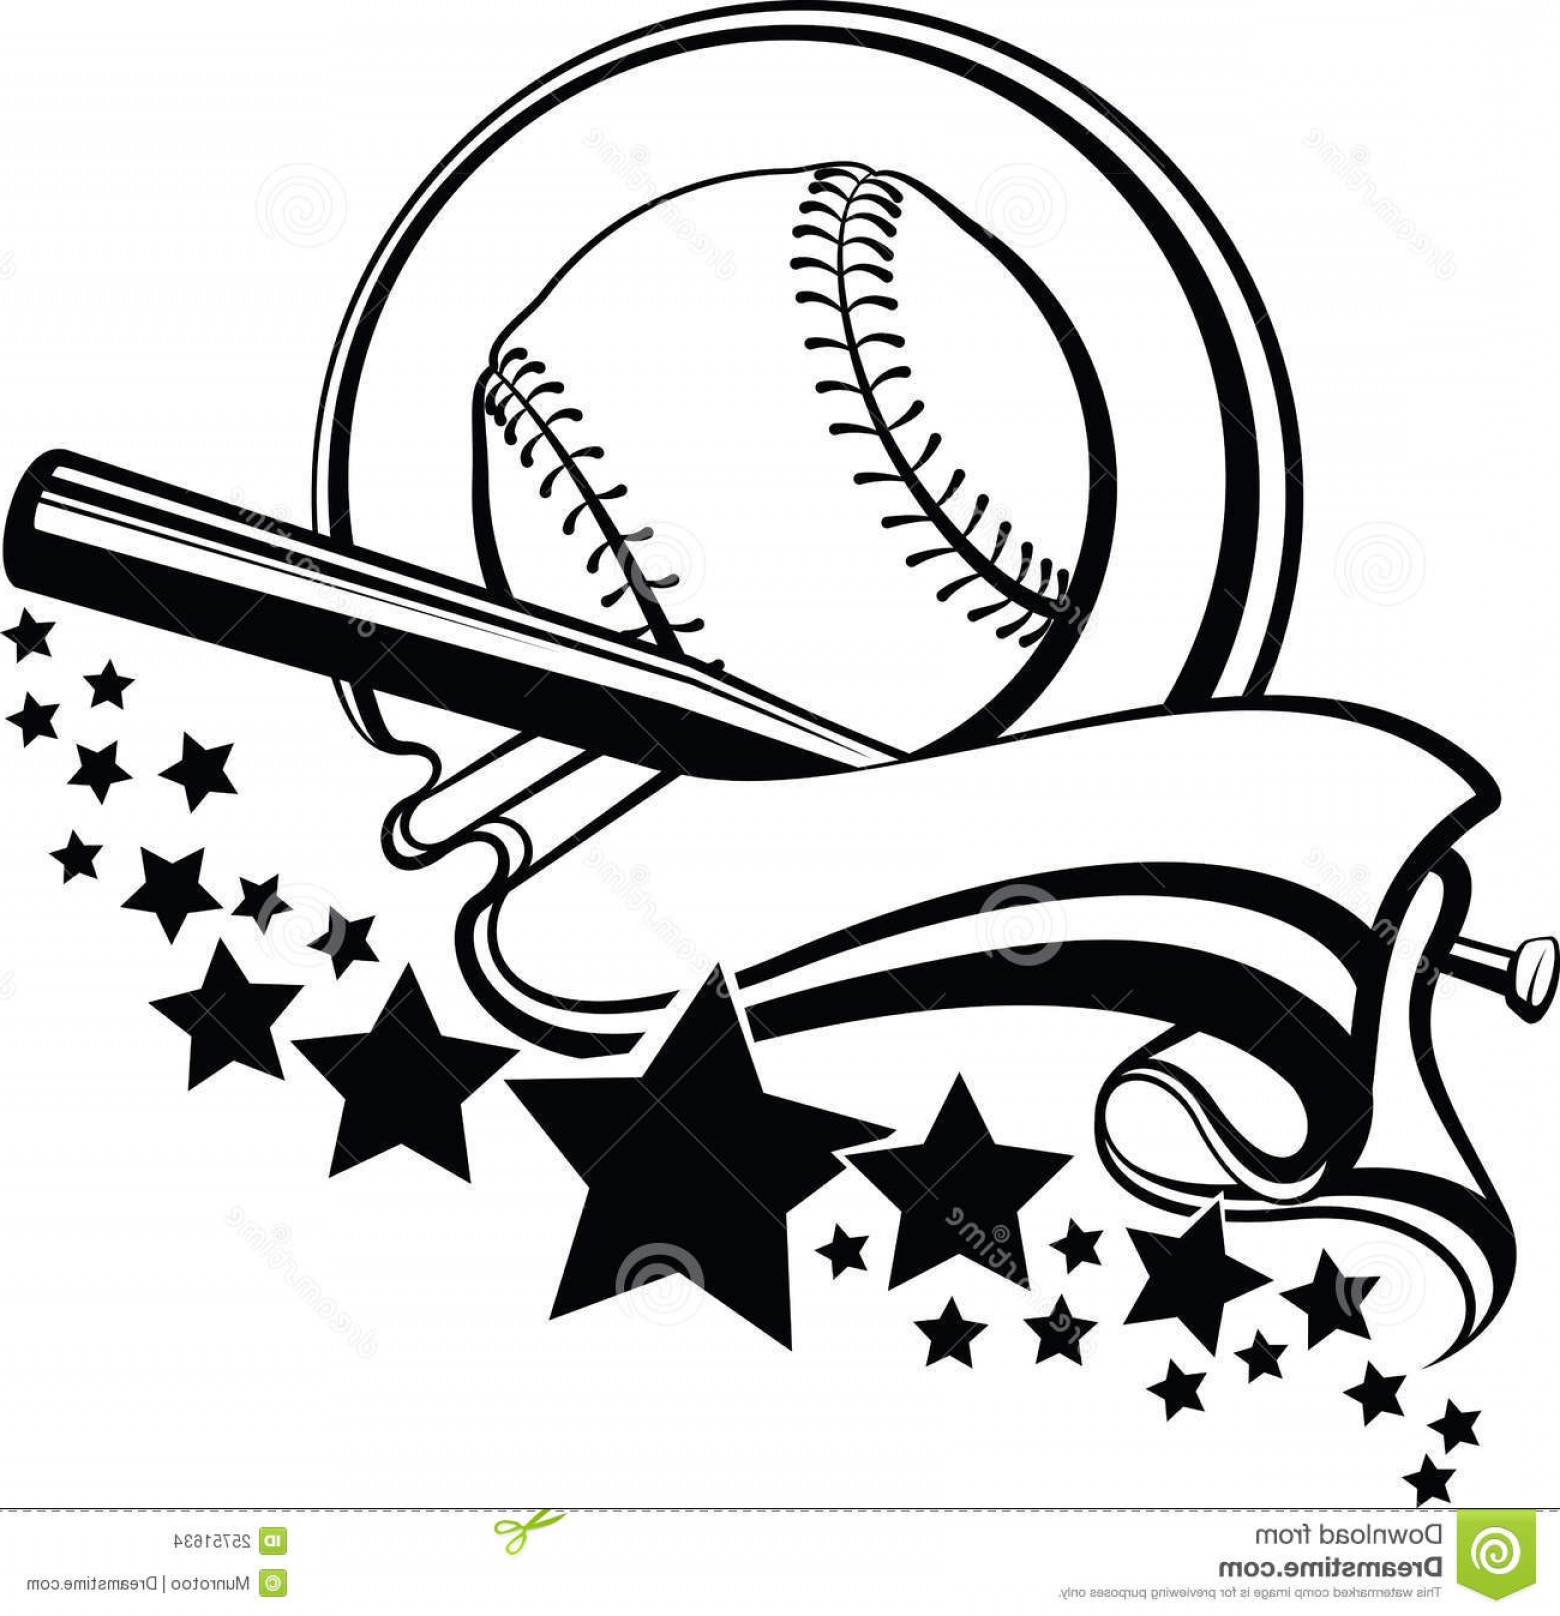 Softball Laces Vector Art B W: Stock Images Baseball Softball Pennant Stars Design Image